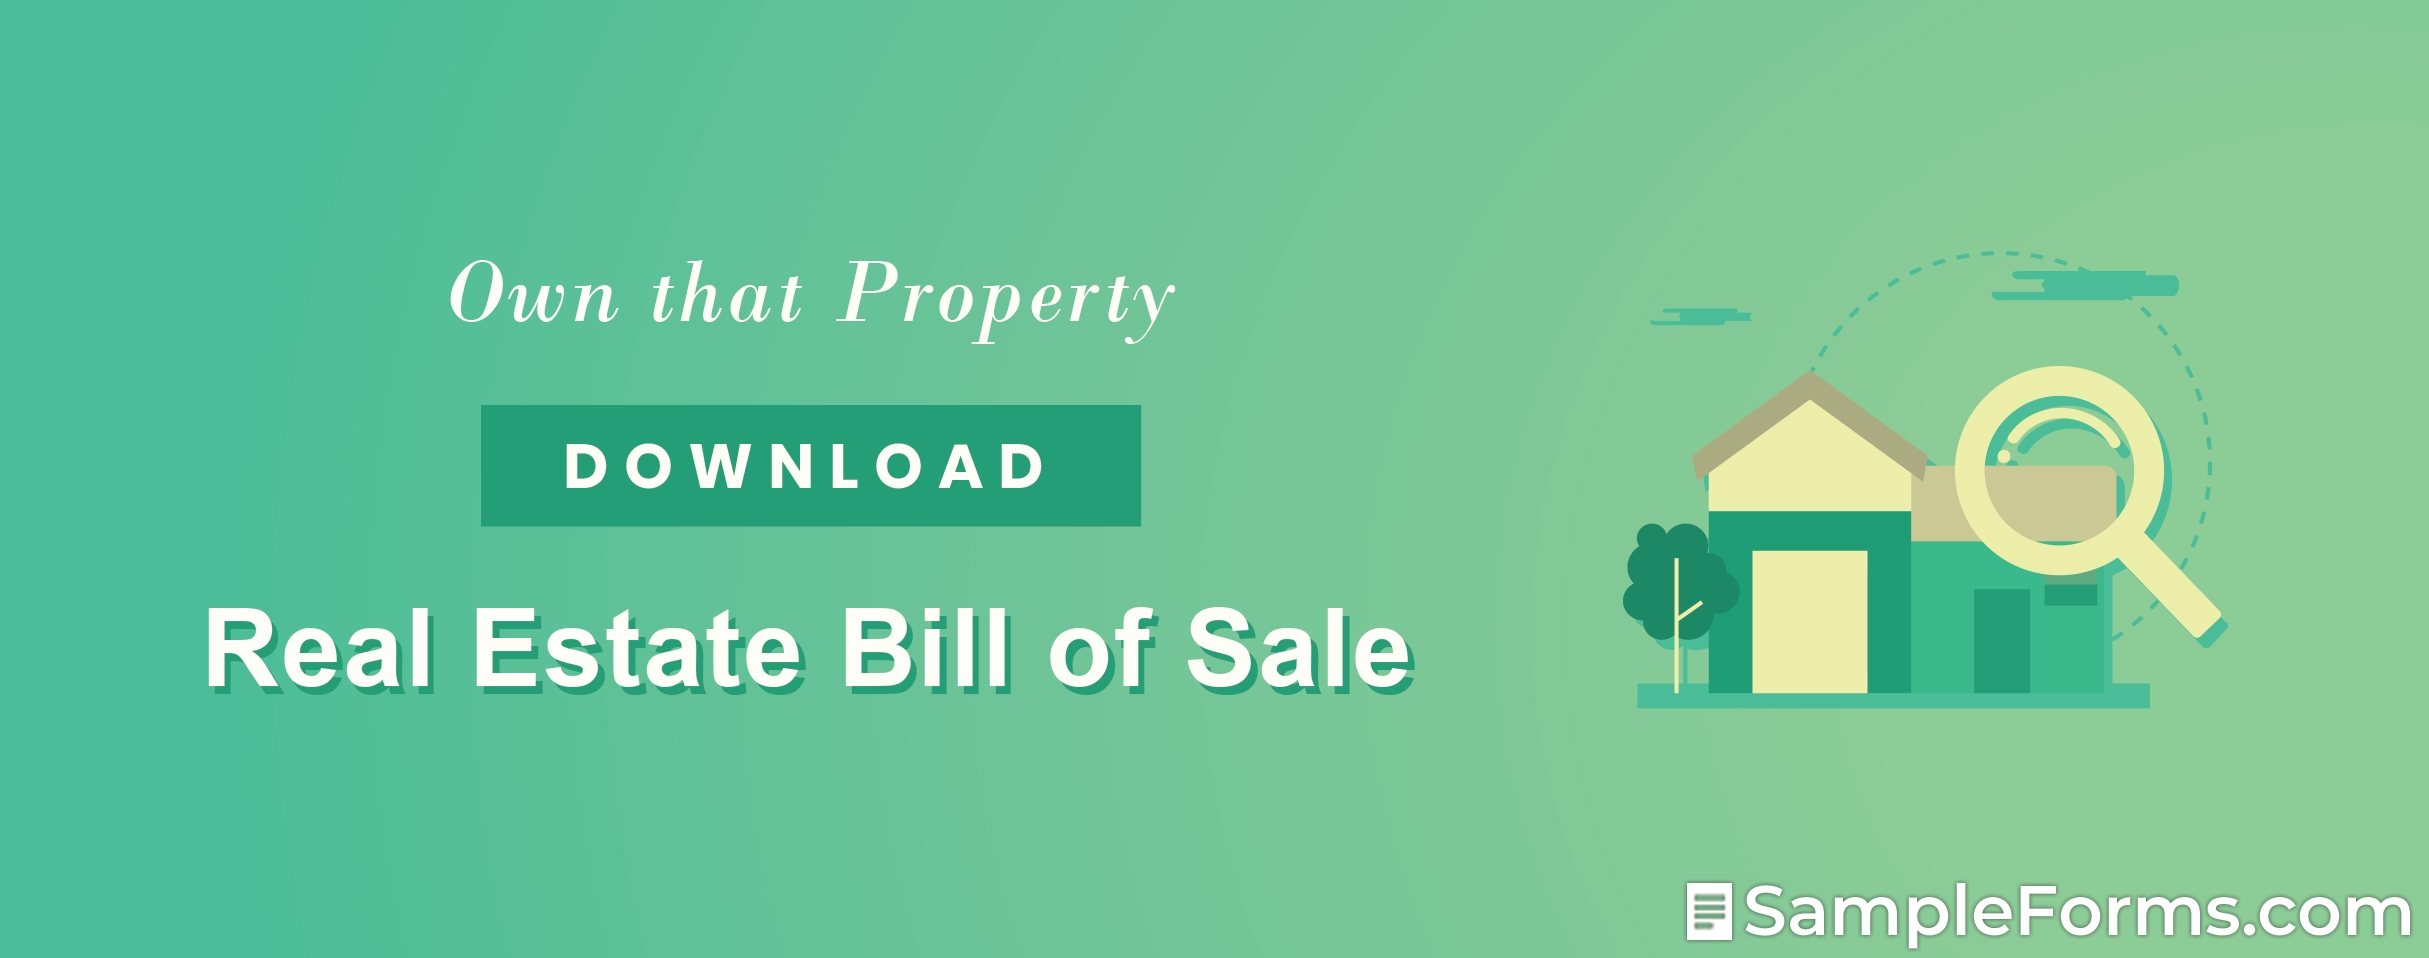 Real Estate Bill of Sale2